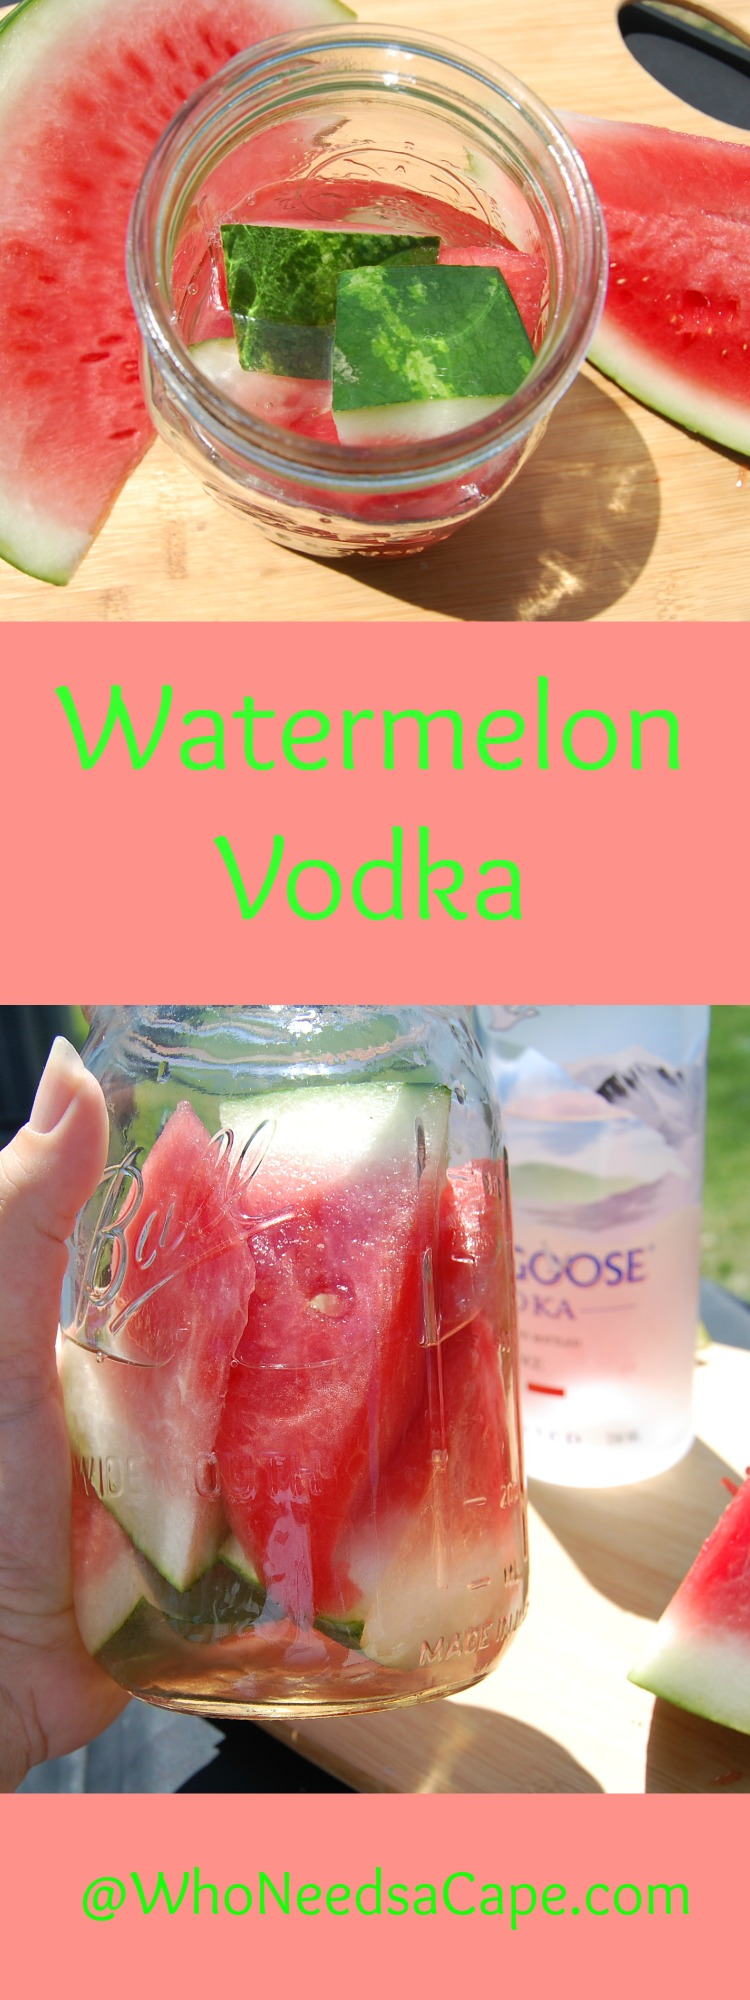 Watermelon Vodka is a summer tasty treat. Easy to infuse you'll love the flavor of the vodka! Who Needs a Cape